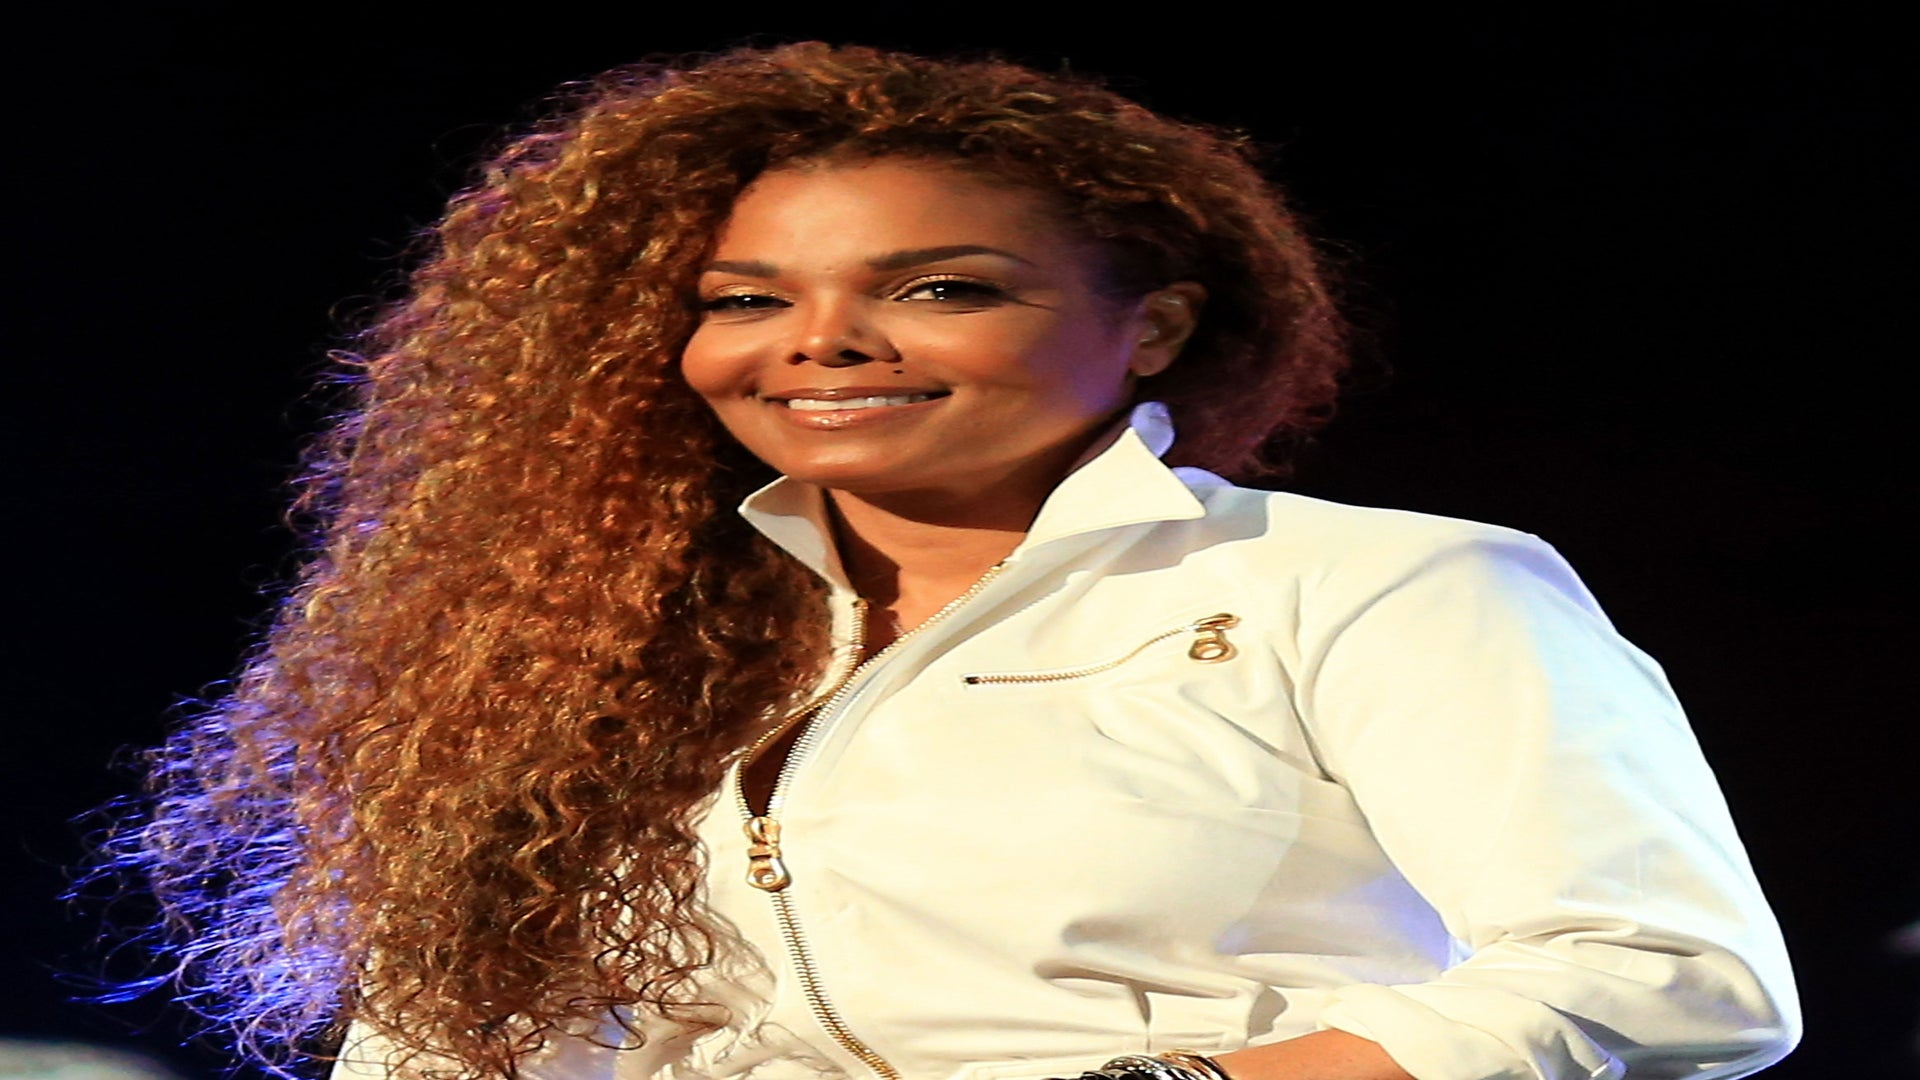 'I'm Doing Well:' Janet Jackson Shares Baby Update To Assure Fans She's Alright